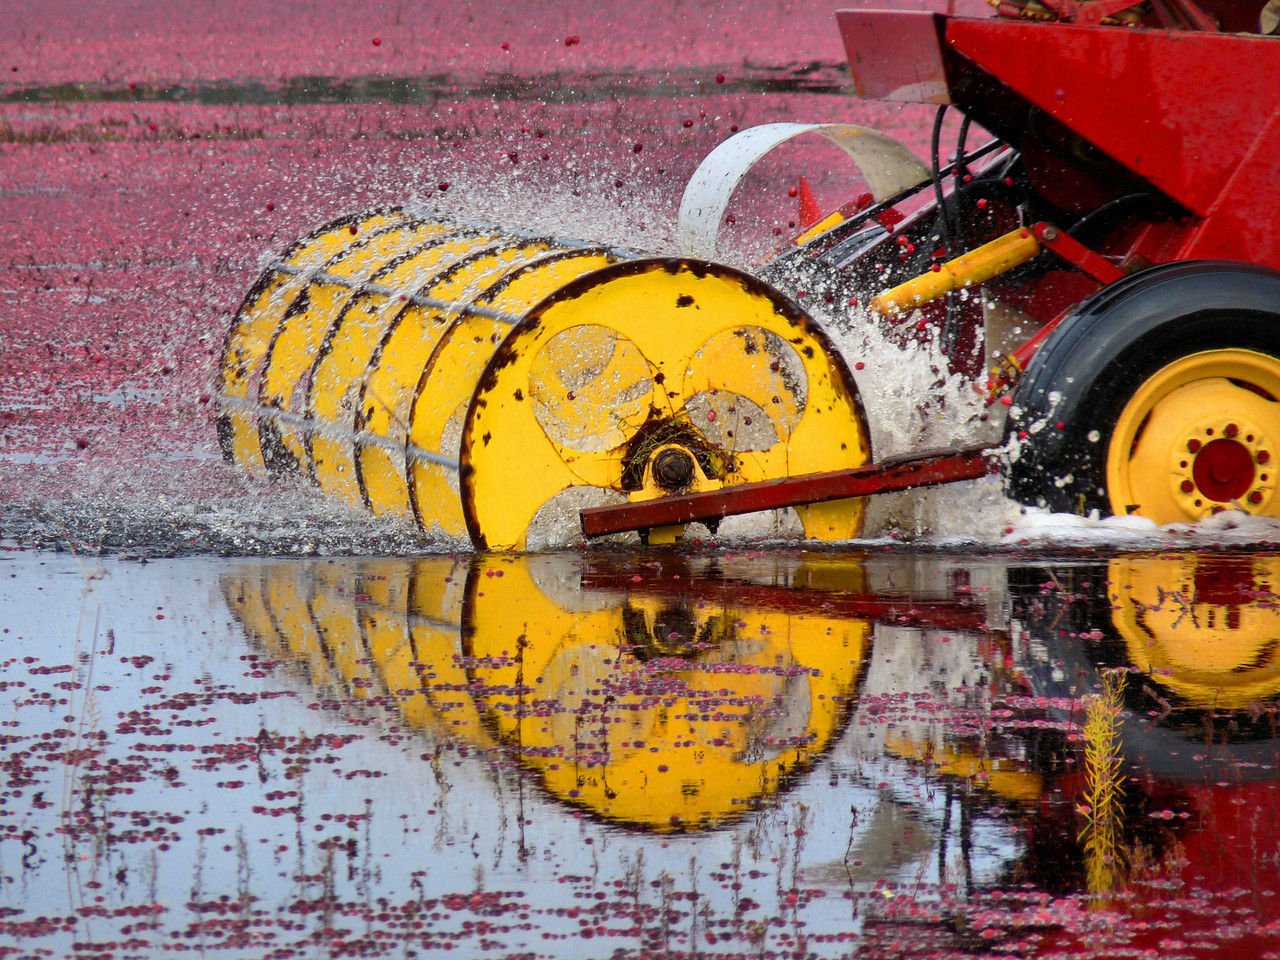 "Boy, did I learn a lot about cranberries and cranberry harvesting this week end. Here's the gallery, as promised... <a href=""http://hocusfocusd70.smugmug.com/Journalism/Cranberries-Cranberries/10218246_av7er#704369742_n2WfZ"">http://hocusfocusd70.smugmug.com/Journalism/Cranberries-Cranberries/10218246_av7er#704369742_n2WfZ</a>   The folks who were harvesting this bog, here in Lakeville, were so nice. The even let me go up onto their big machine (kind of like a boom) to get photographs of the bog from up above. I'll put some up a little later. This machine is called a picker. It goes through the bog and gently beats on the cranberry plants to loosen the berries. In this photo, you can see them spraying up  into the air with all the water ."